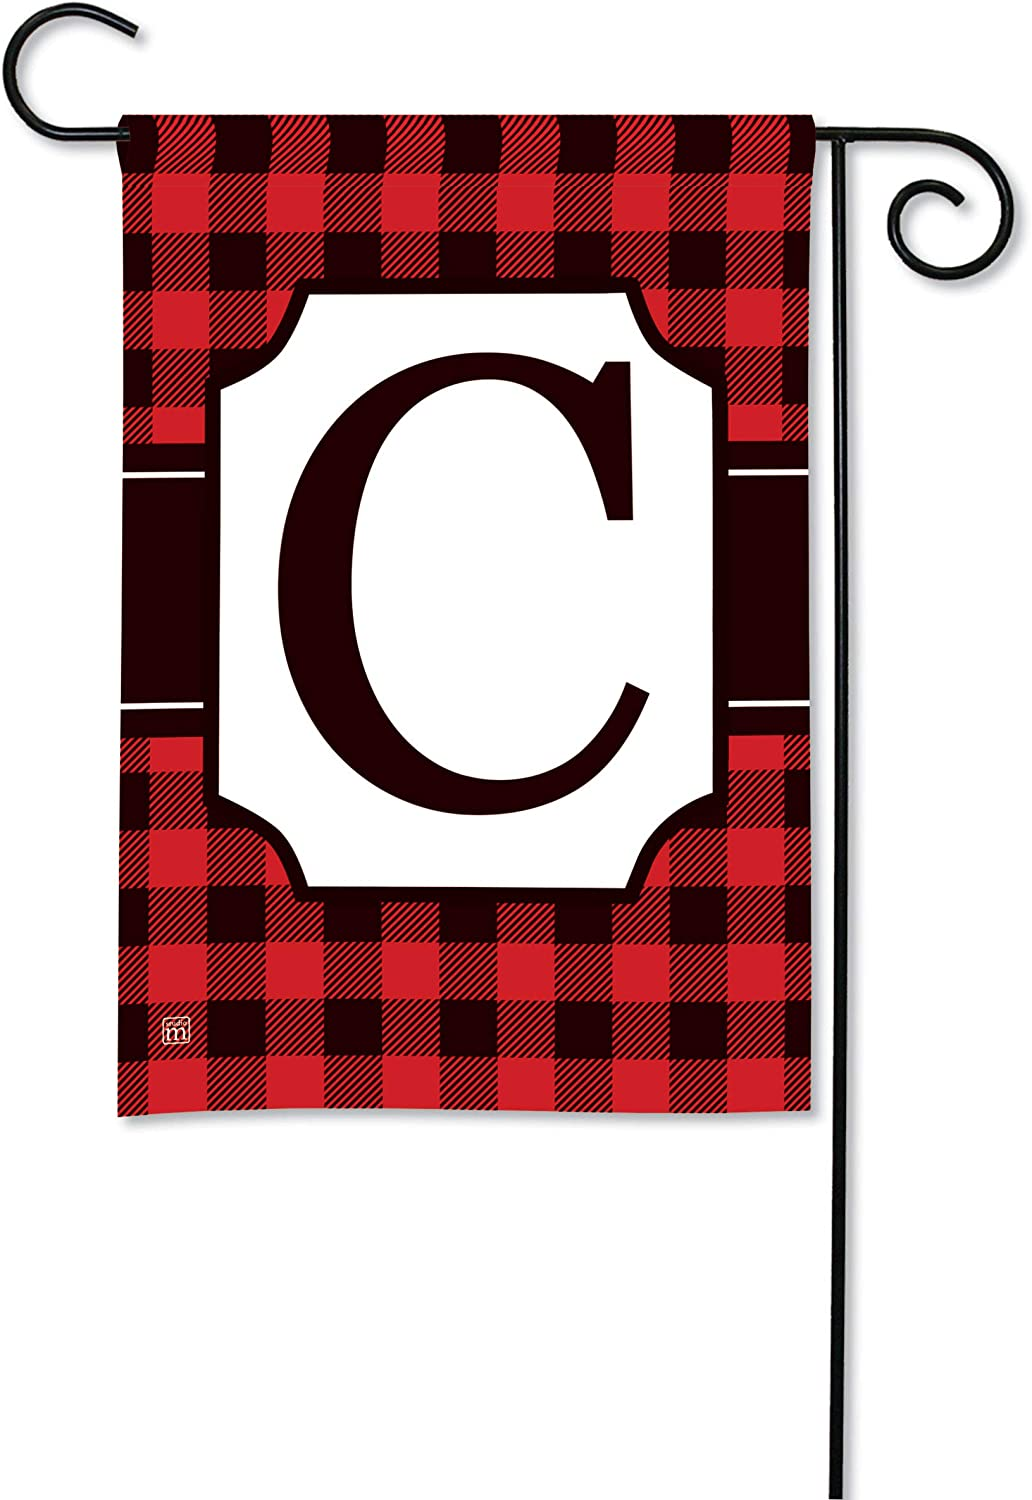 BreezeArt Studio M Buffalo Check Monogram C Garden Flag - Premium Quality, 12.5 x 18 Inches